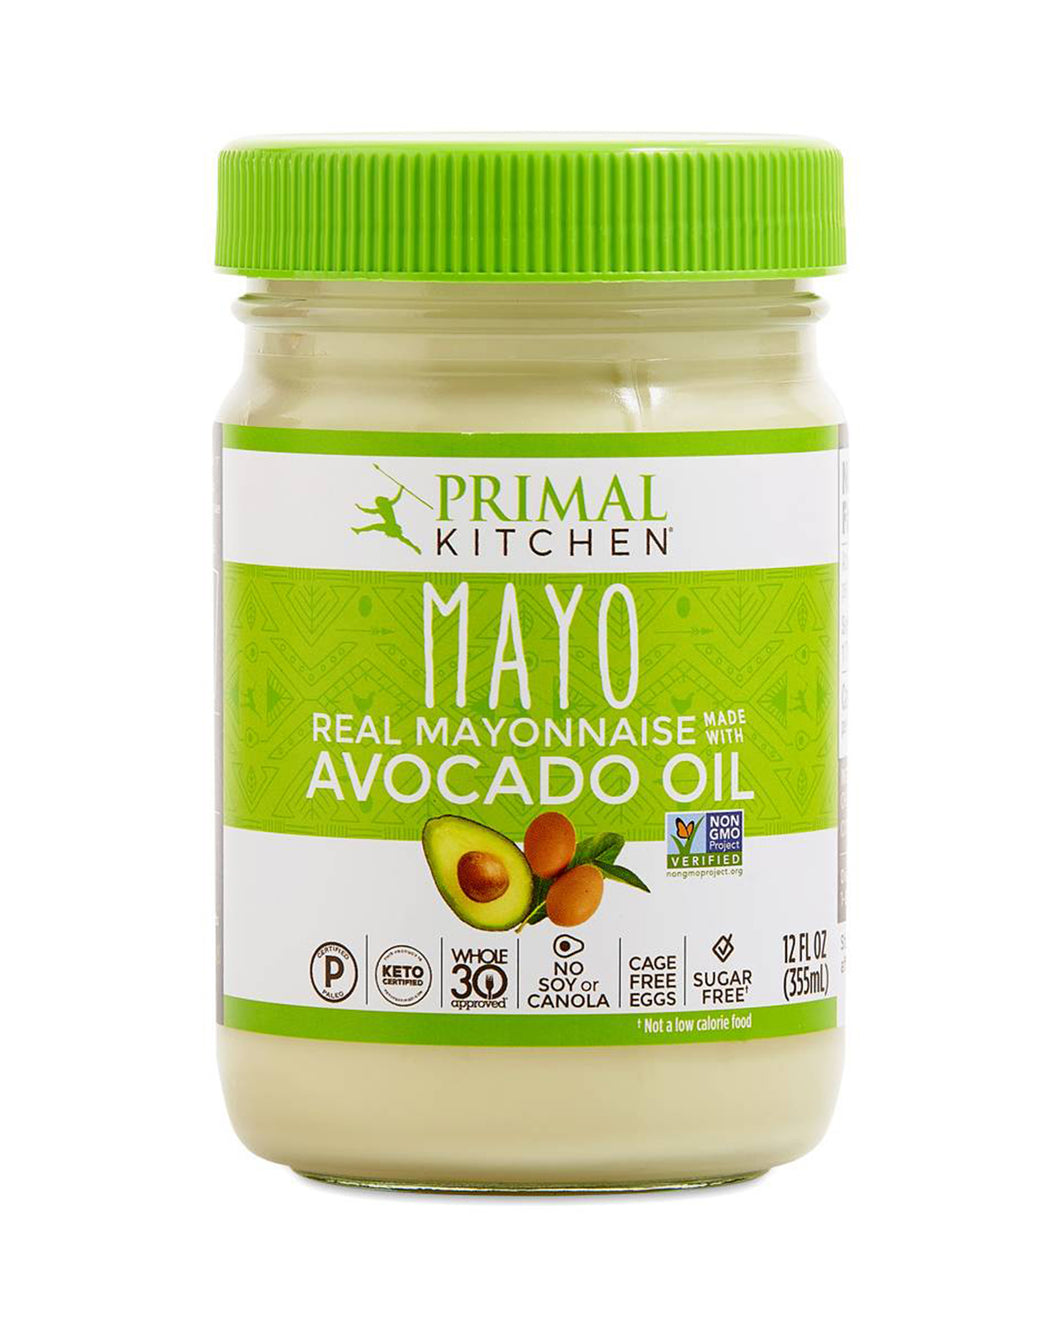 Avocado Oil Mayo by Primal Kitchen, 12 oz